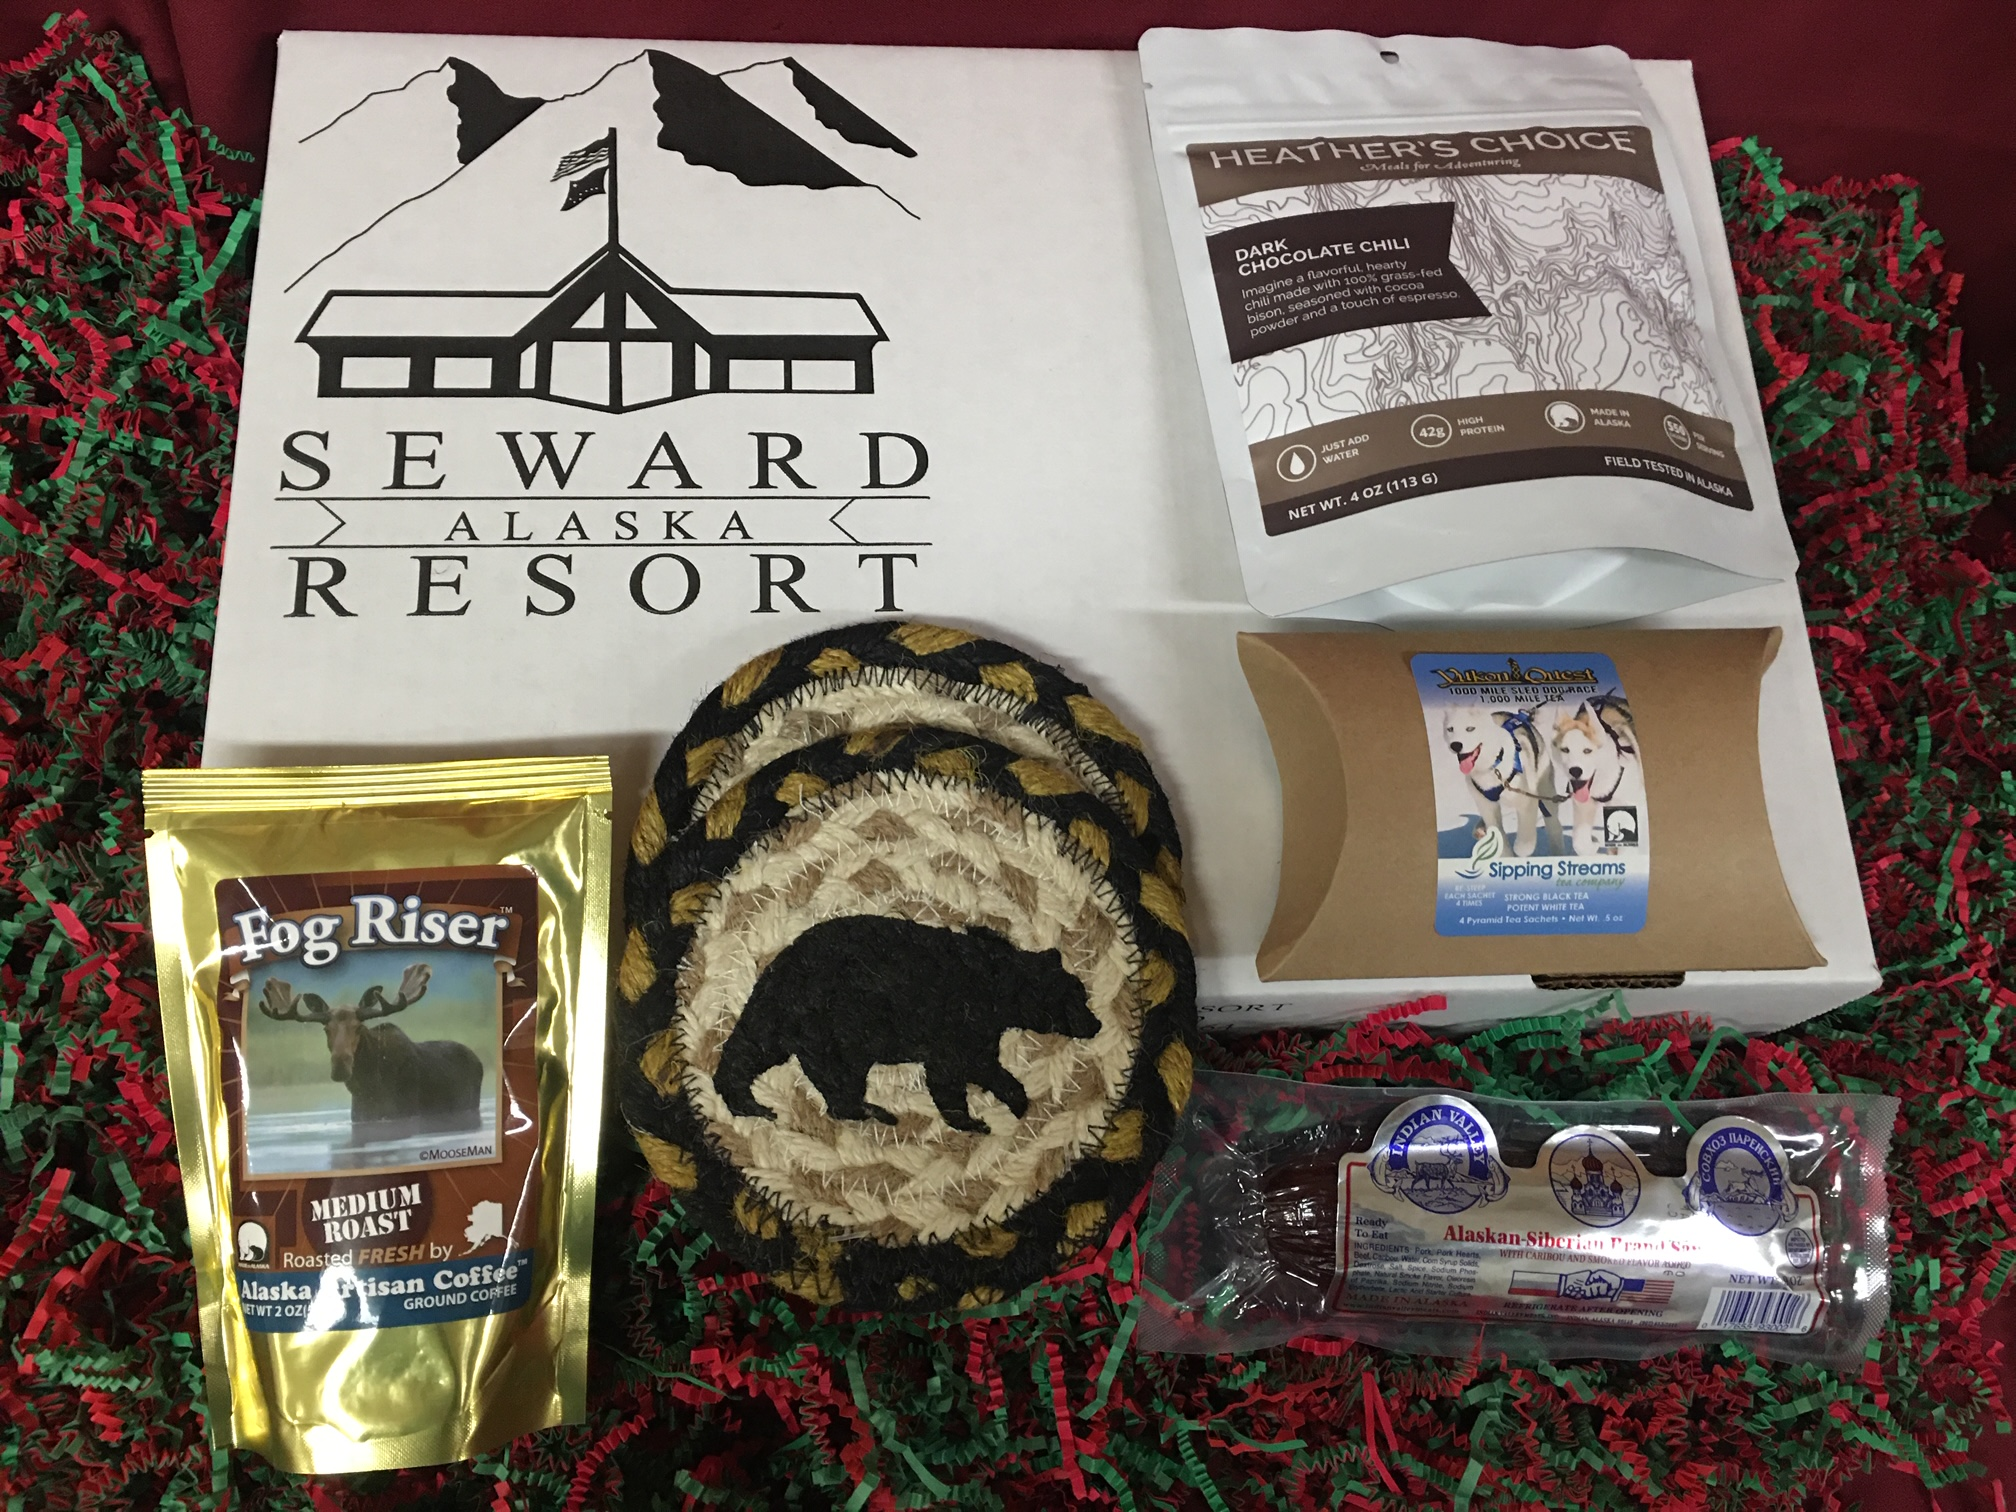 Seward Resort Gift Box Denali Back Country